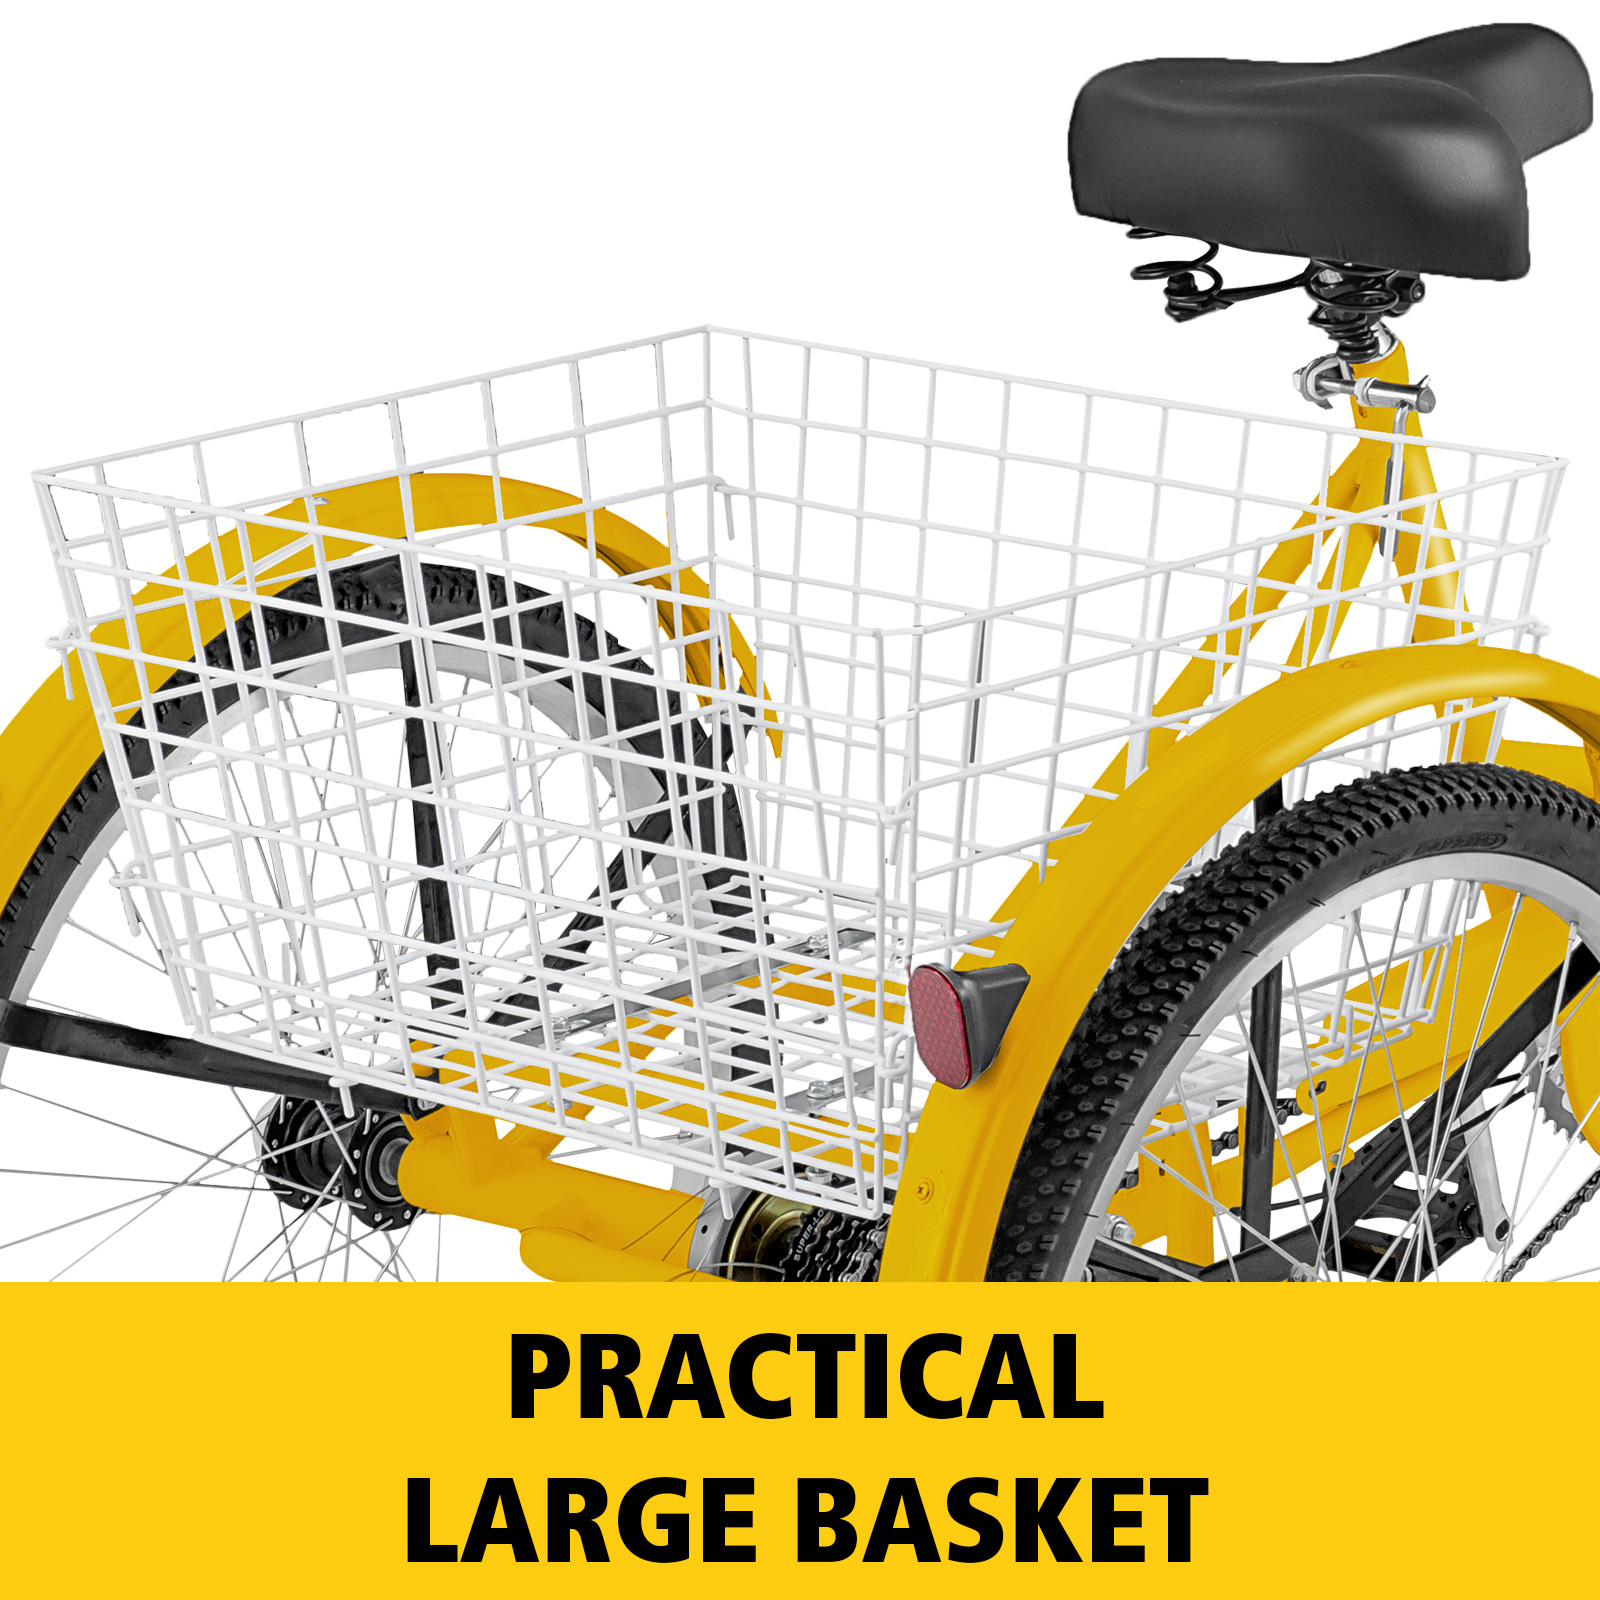 20-24-26-034-Adult-Tricycle-1-7-Speed-3-Wheel-Large-Basket-For-Shopping-Optional thumbnail 19